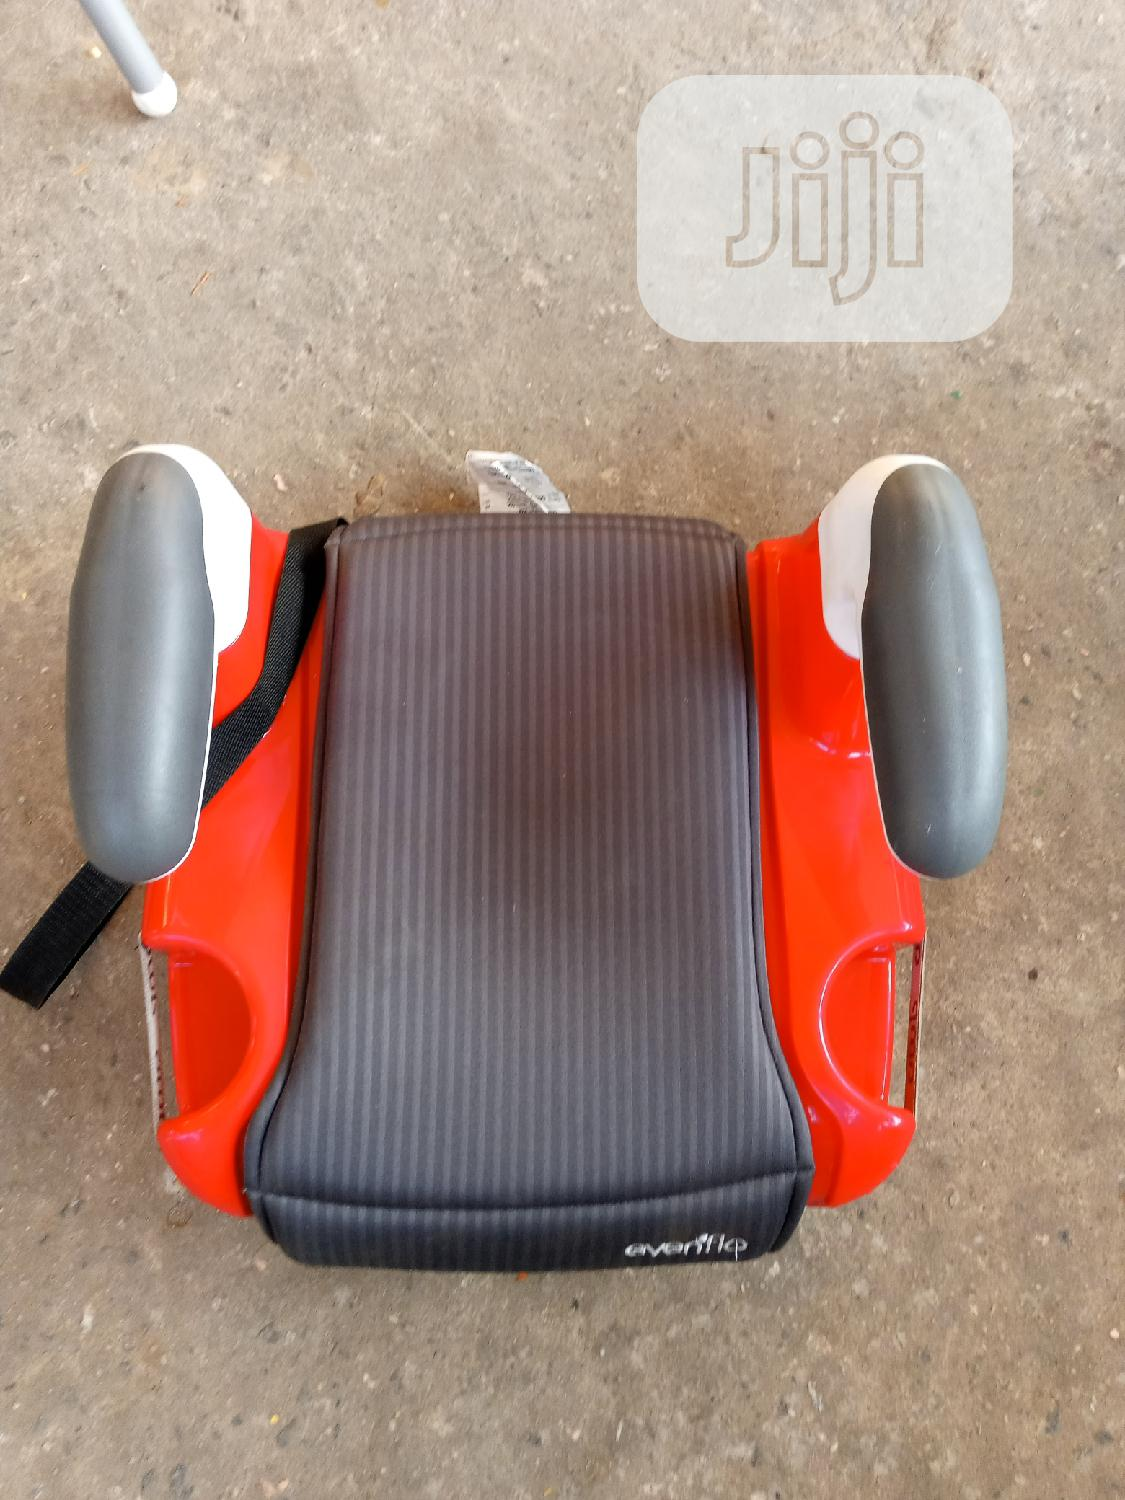 Very Clean Baby Car Seat